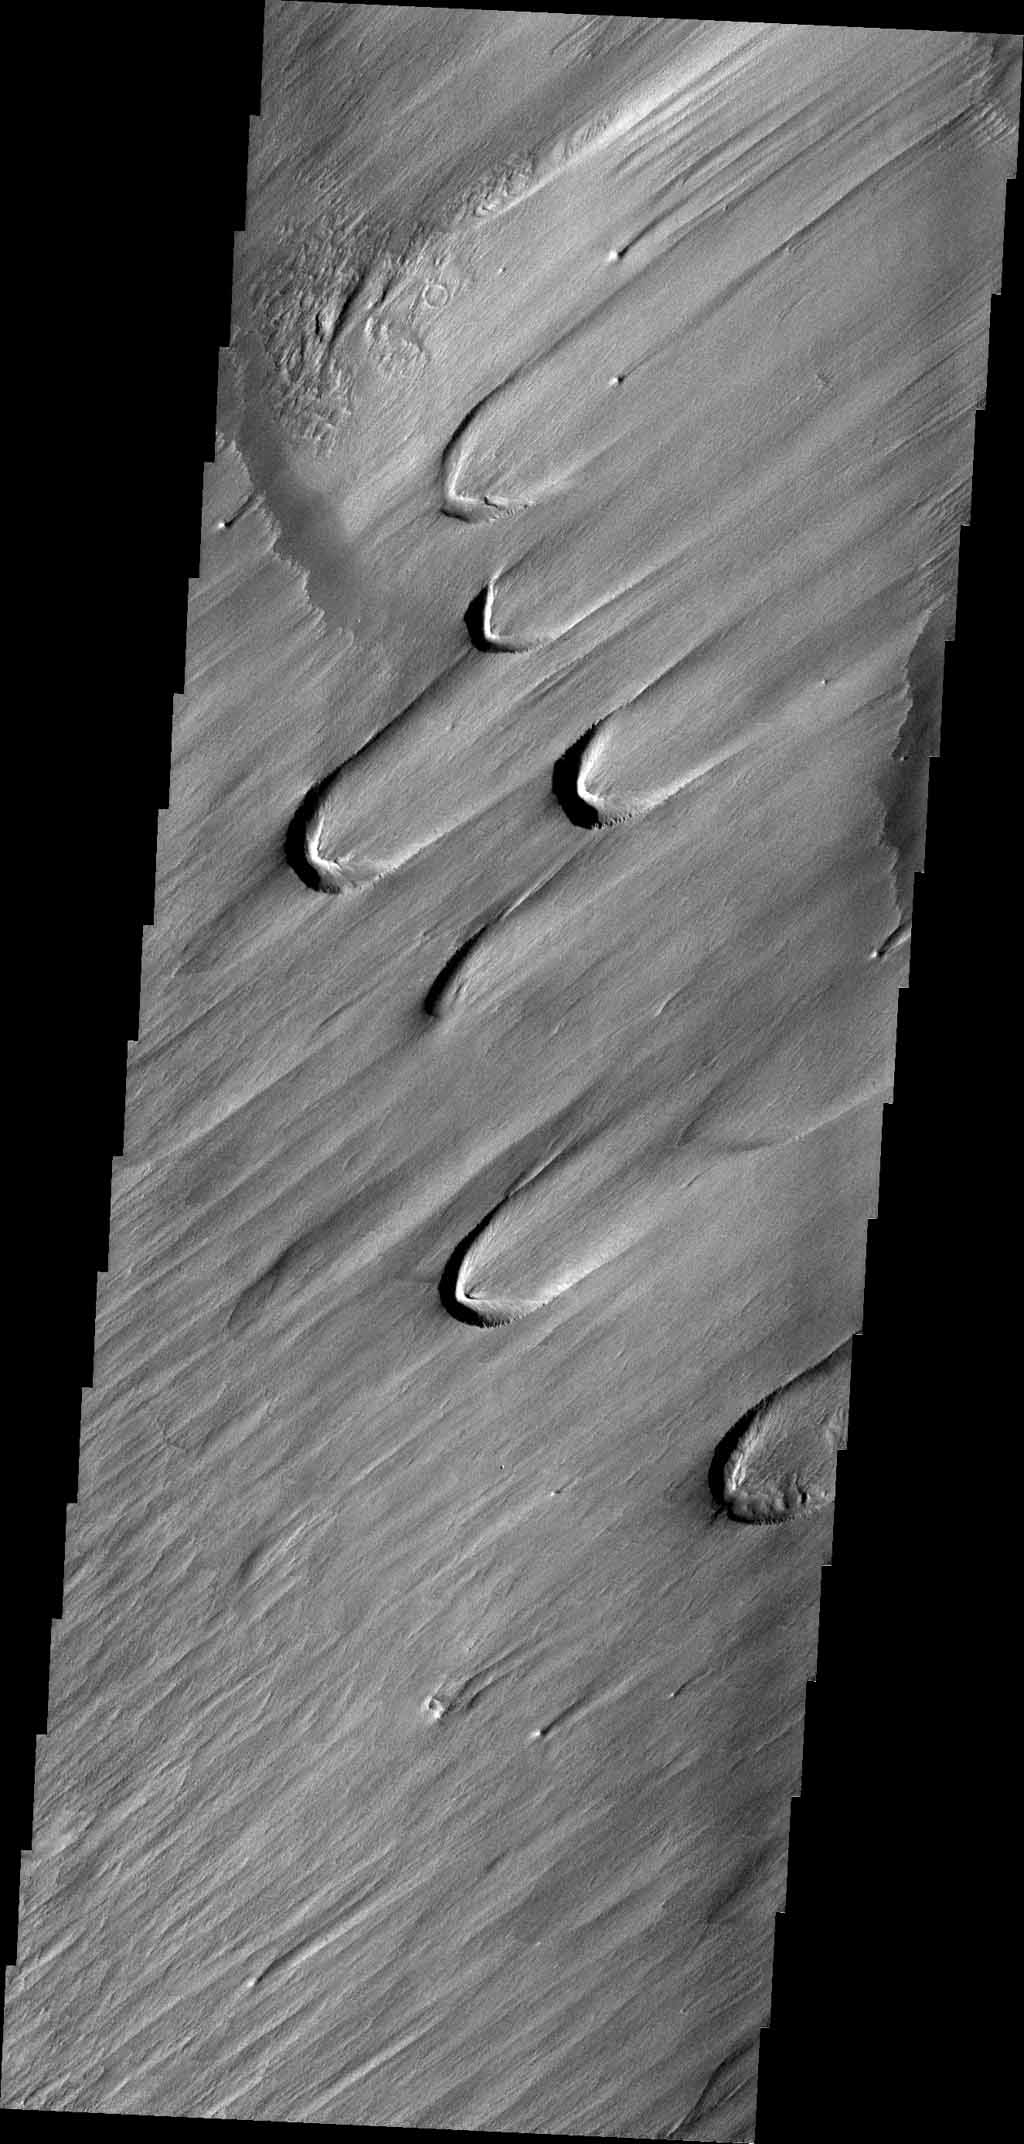 On Earth, these wind-derived features are called 'blowouts,' where the force of the wind has carved out a crescent-shaped depression in soft, uncemented material like glacial loess. This image is from NASA's Mars Odyssey.